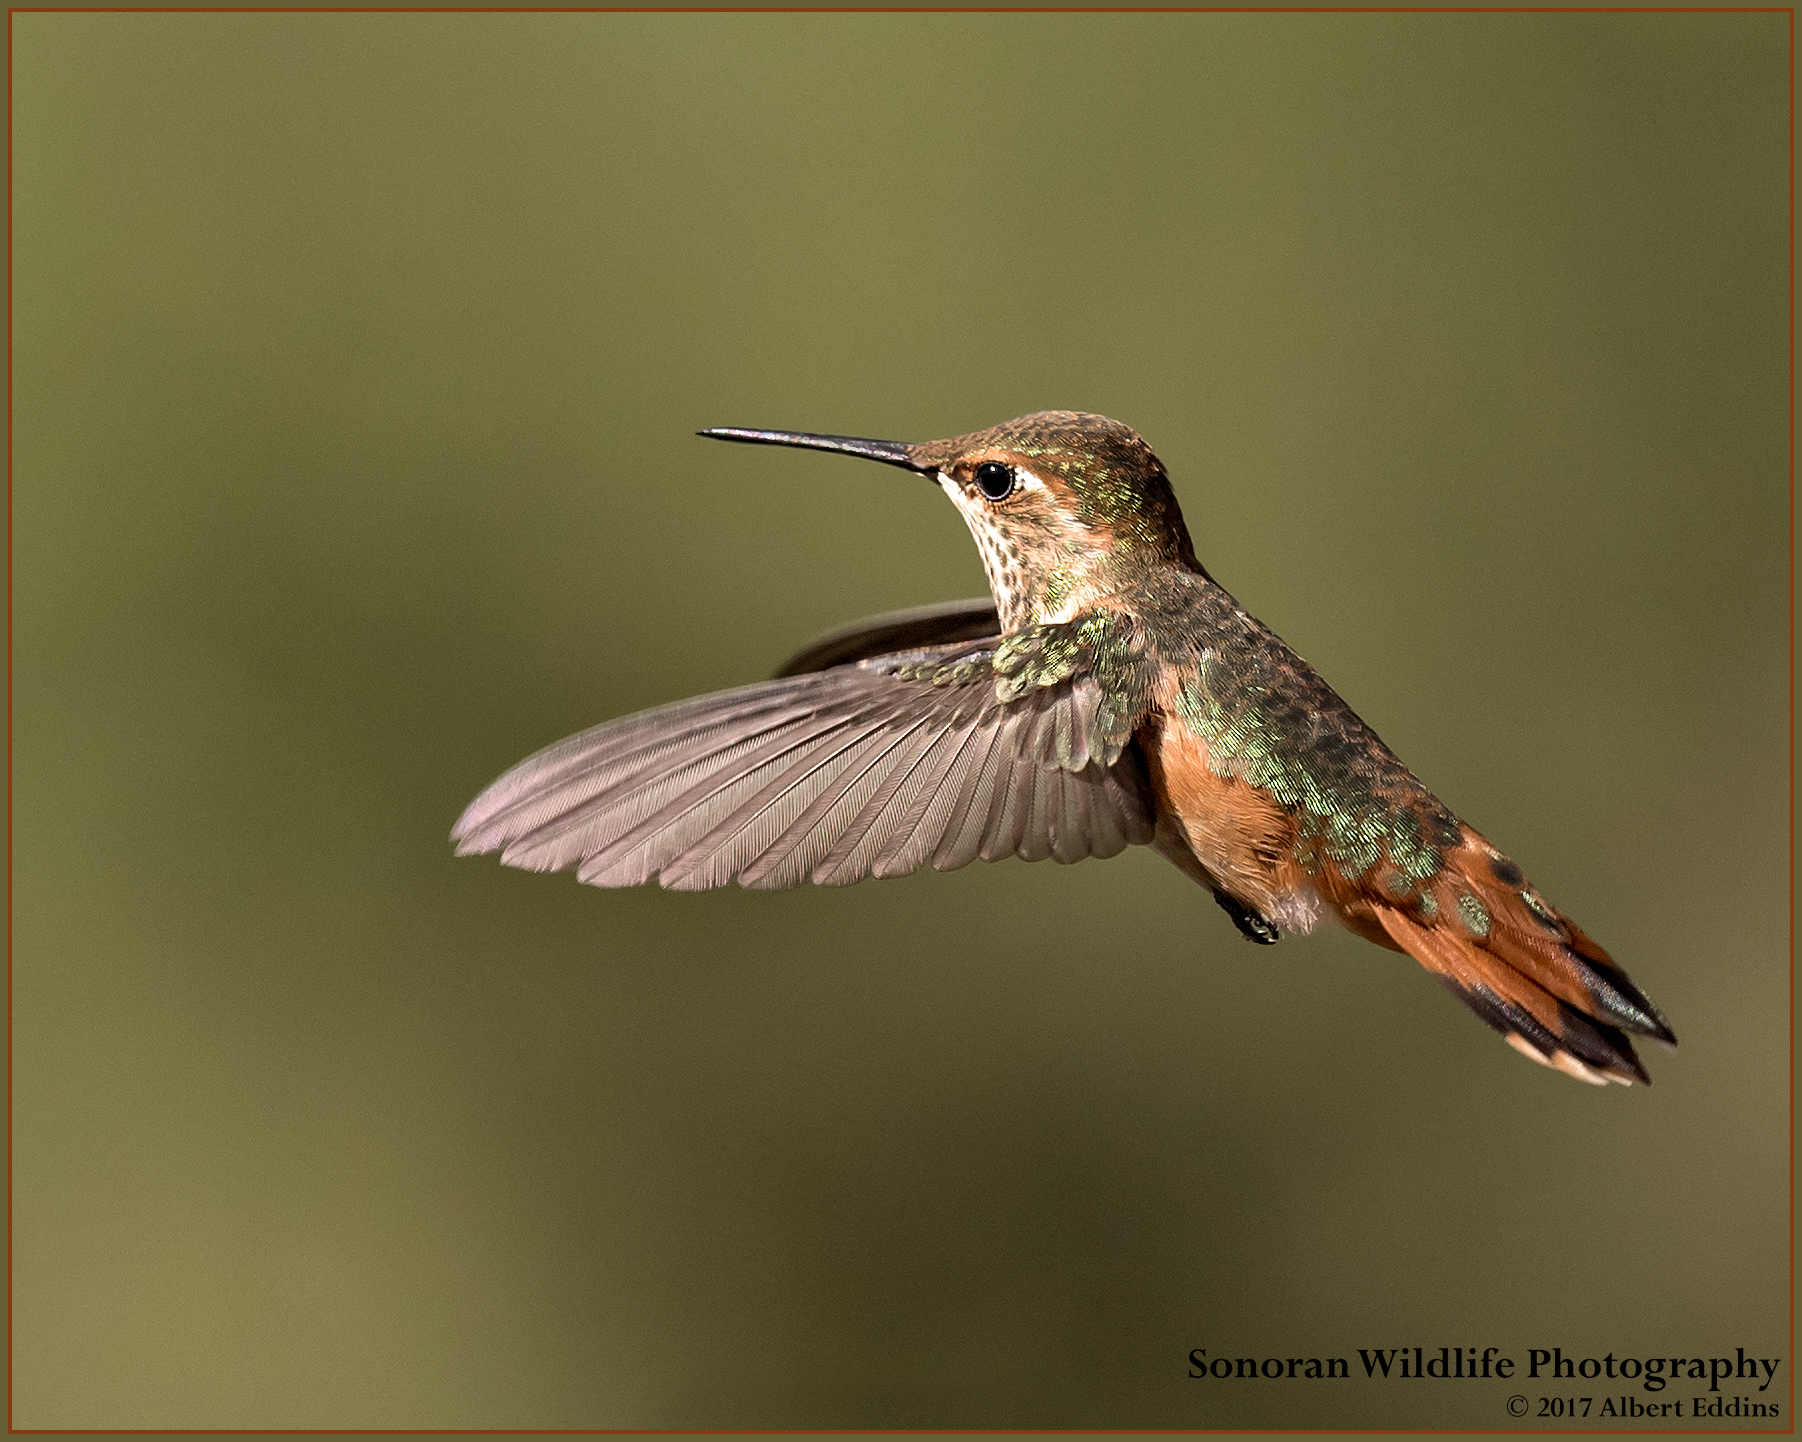 Hummingbird - Sedona, Arizona